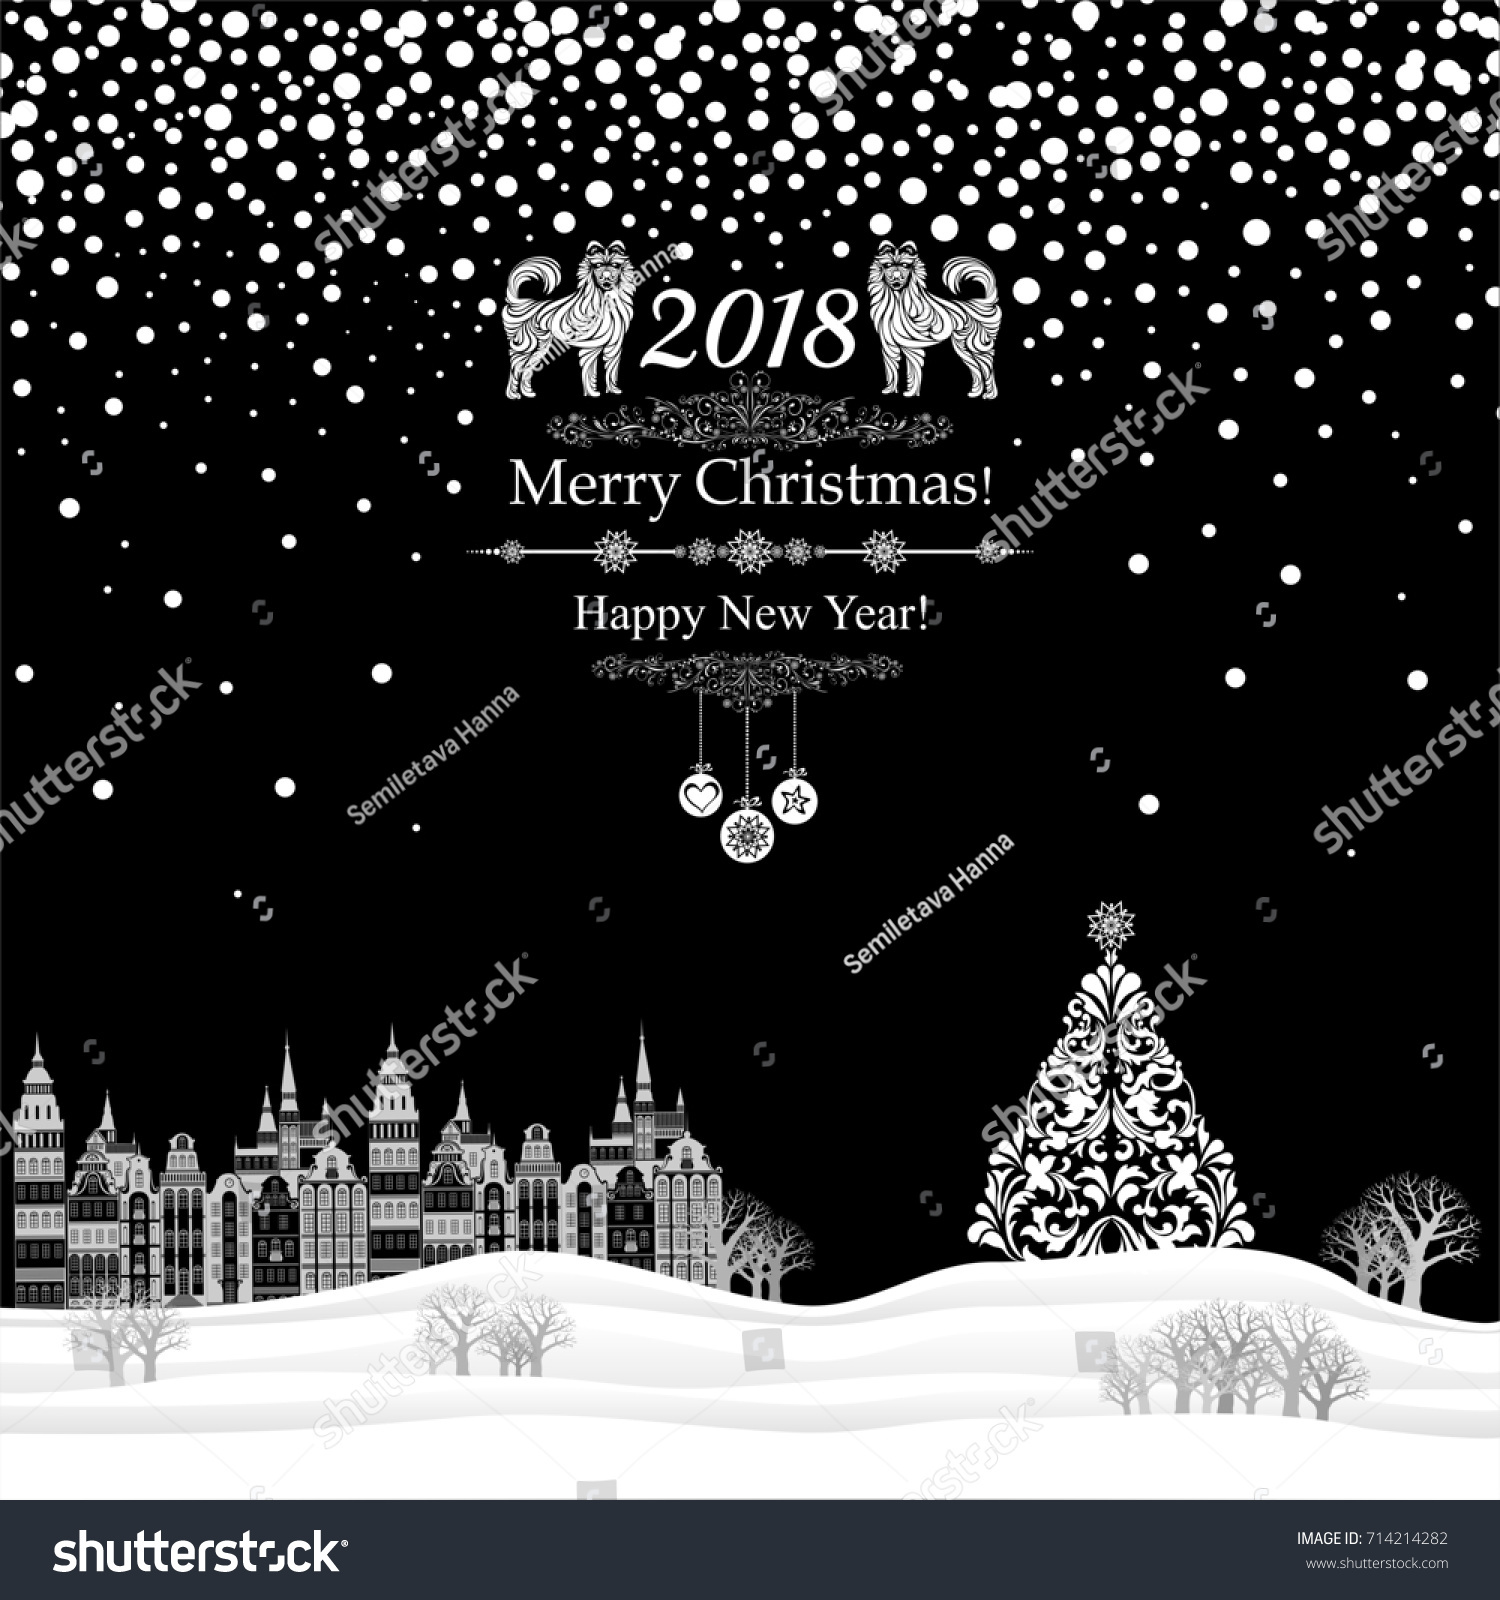 stock photo happy new year greeting card celebration black background with christmas landscape christmas jpg 1500x1600